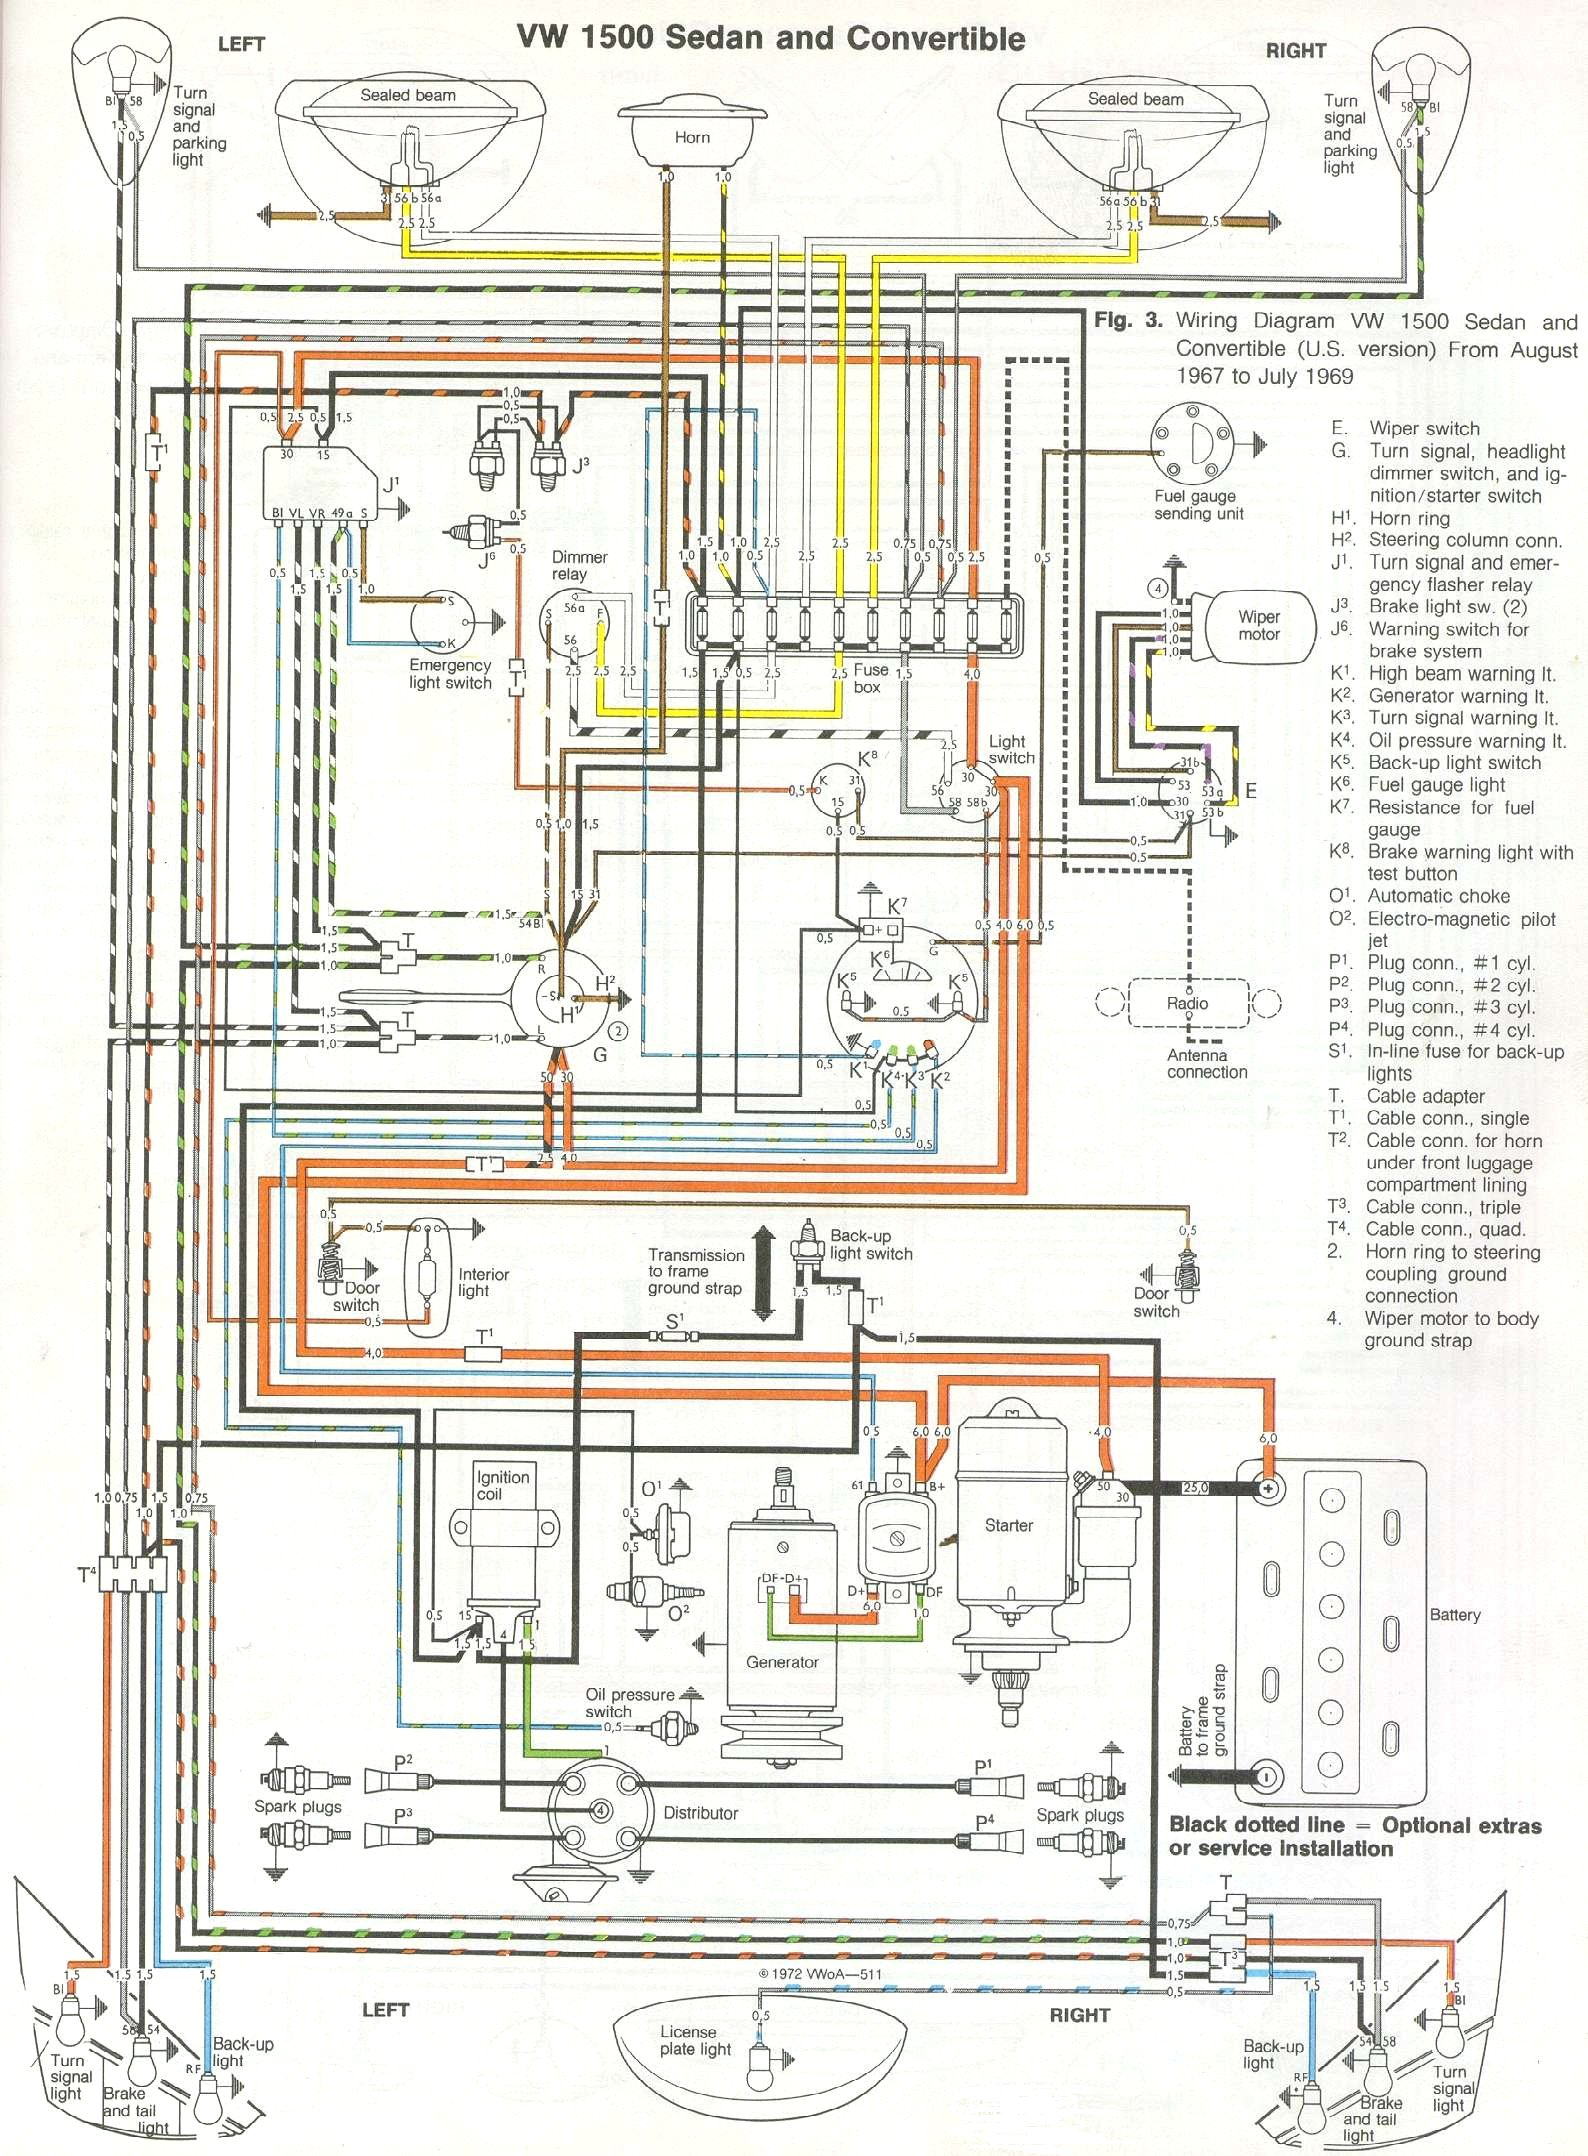 bug_6869 thesamba com type 1 wiring diagrams find wiring diagram for 87 ford f 150 at cita.asia